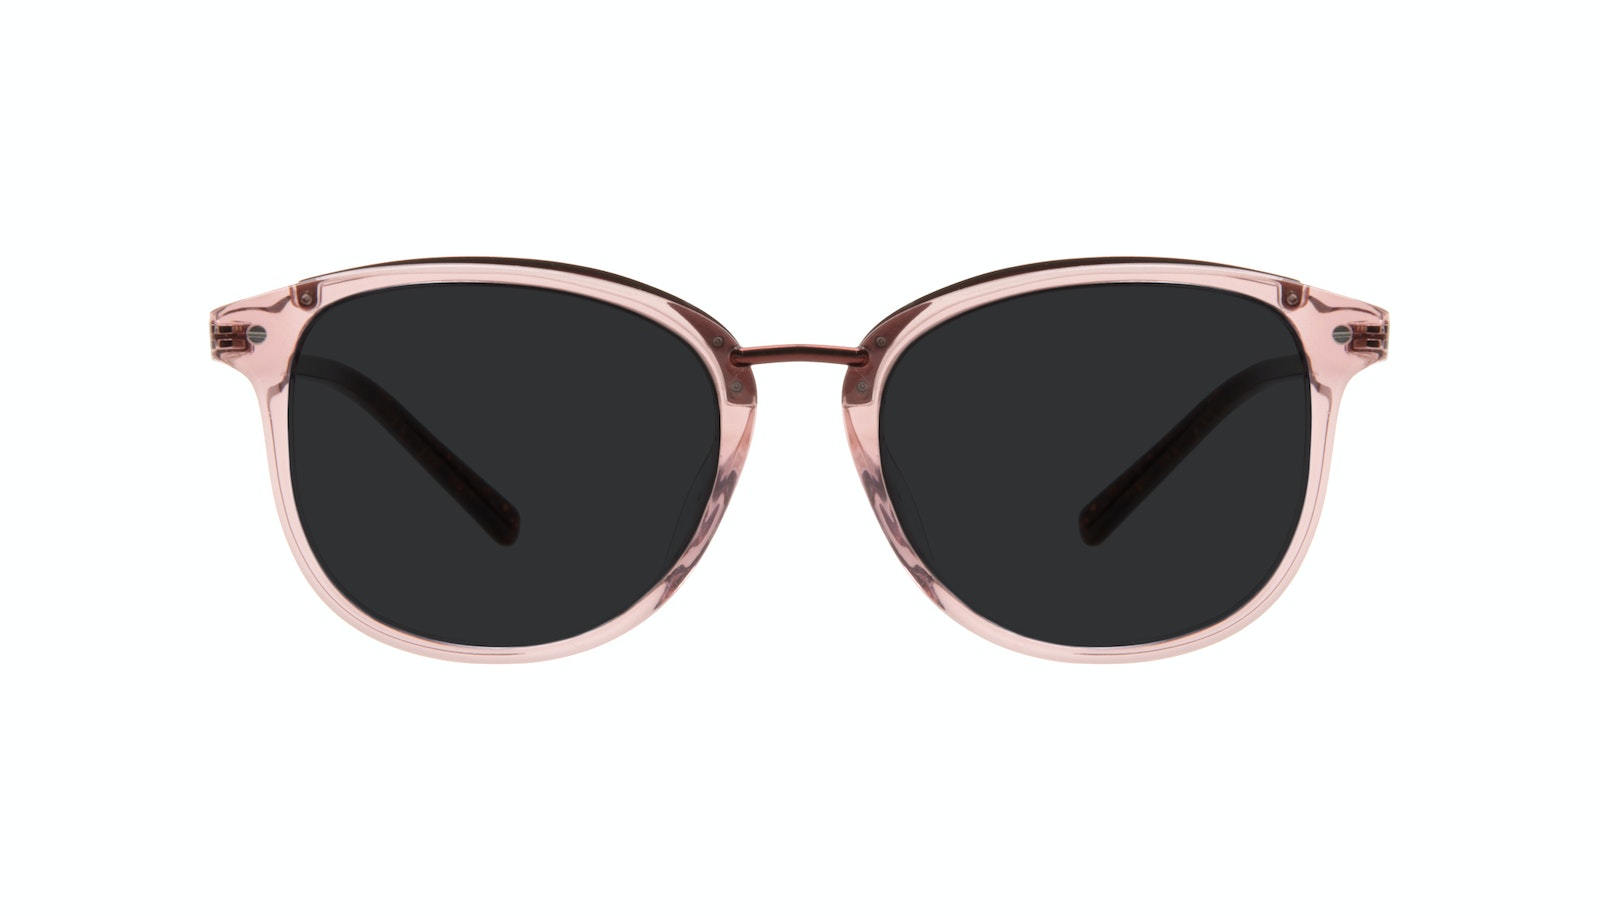 Affordable Fashion Glasses Round Sunglasses Women Bella Petite Rose